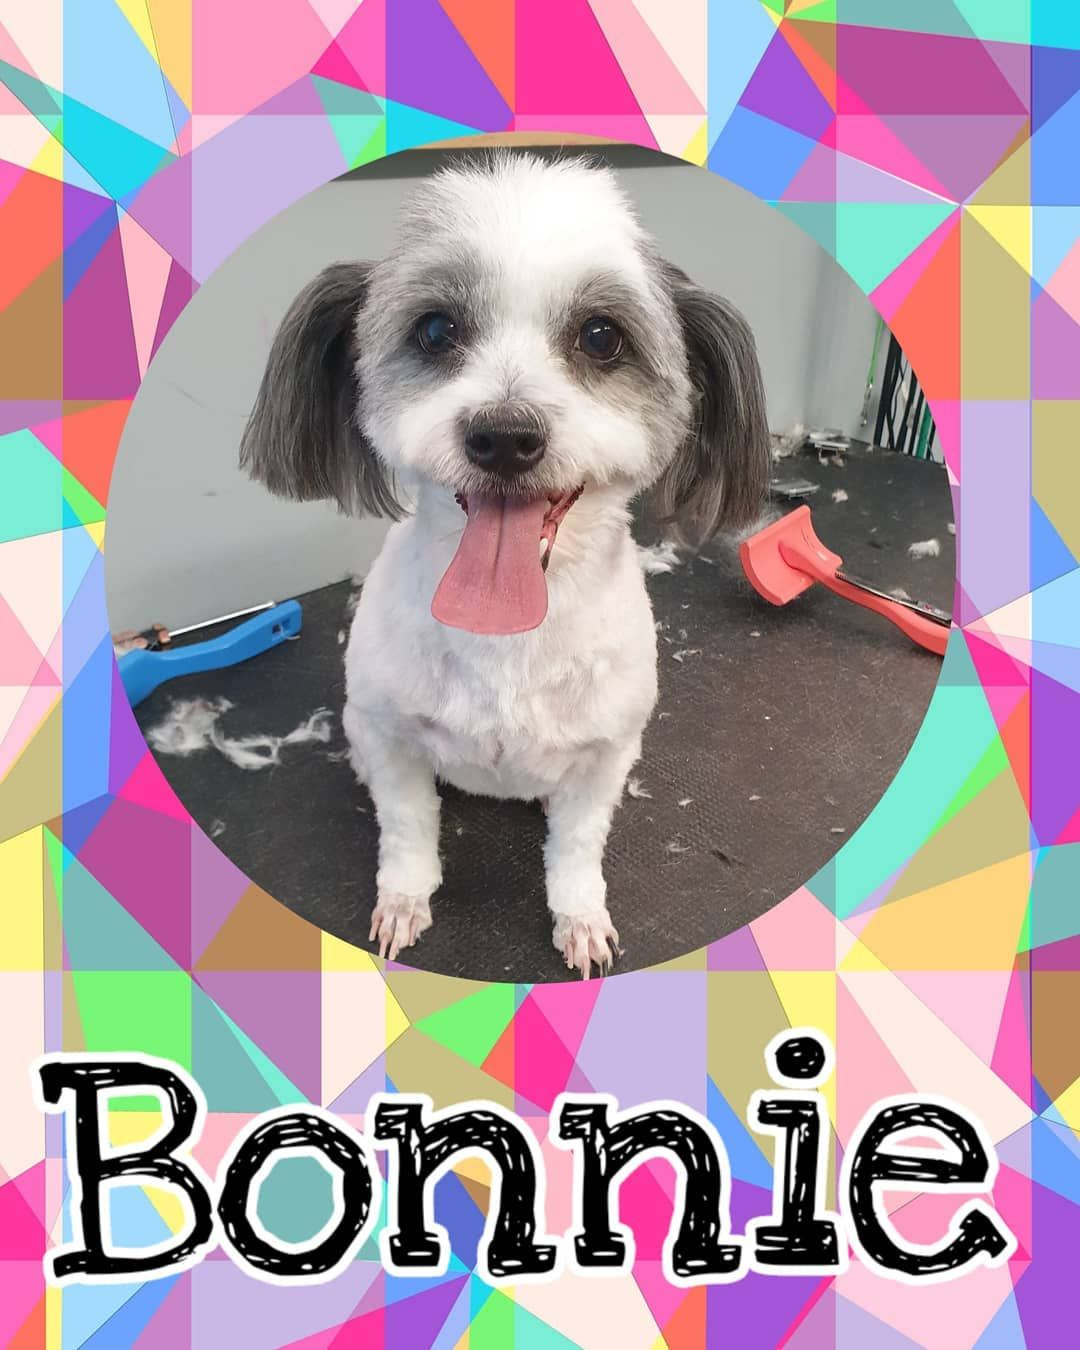 Bonnie Loveisinthehairdoggrooming Doggrooming Doggroomer